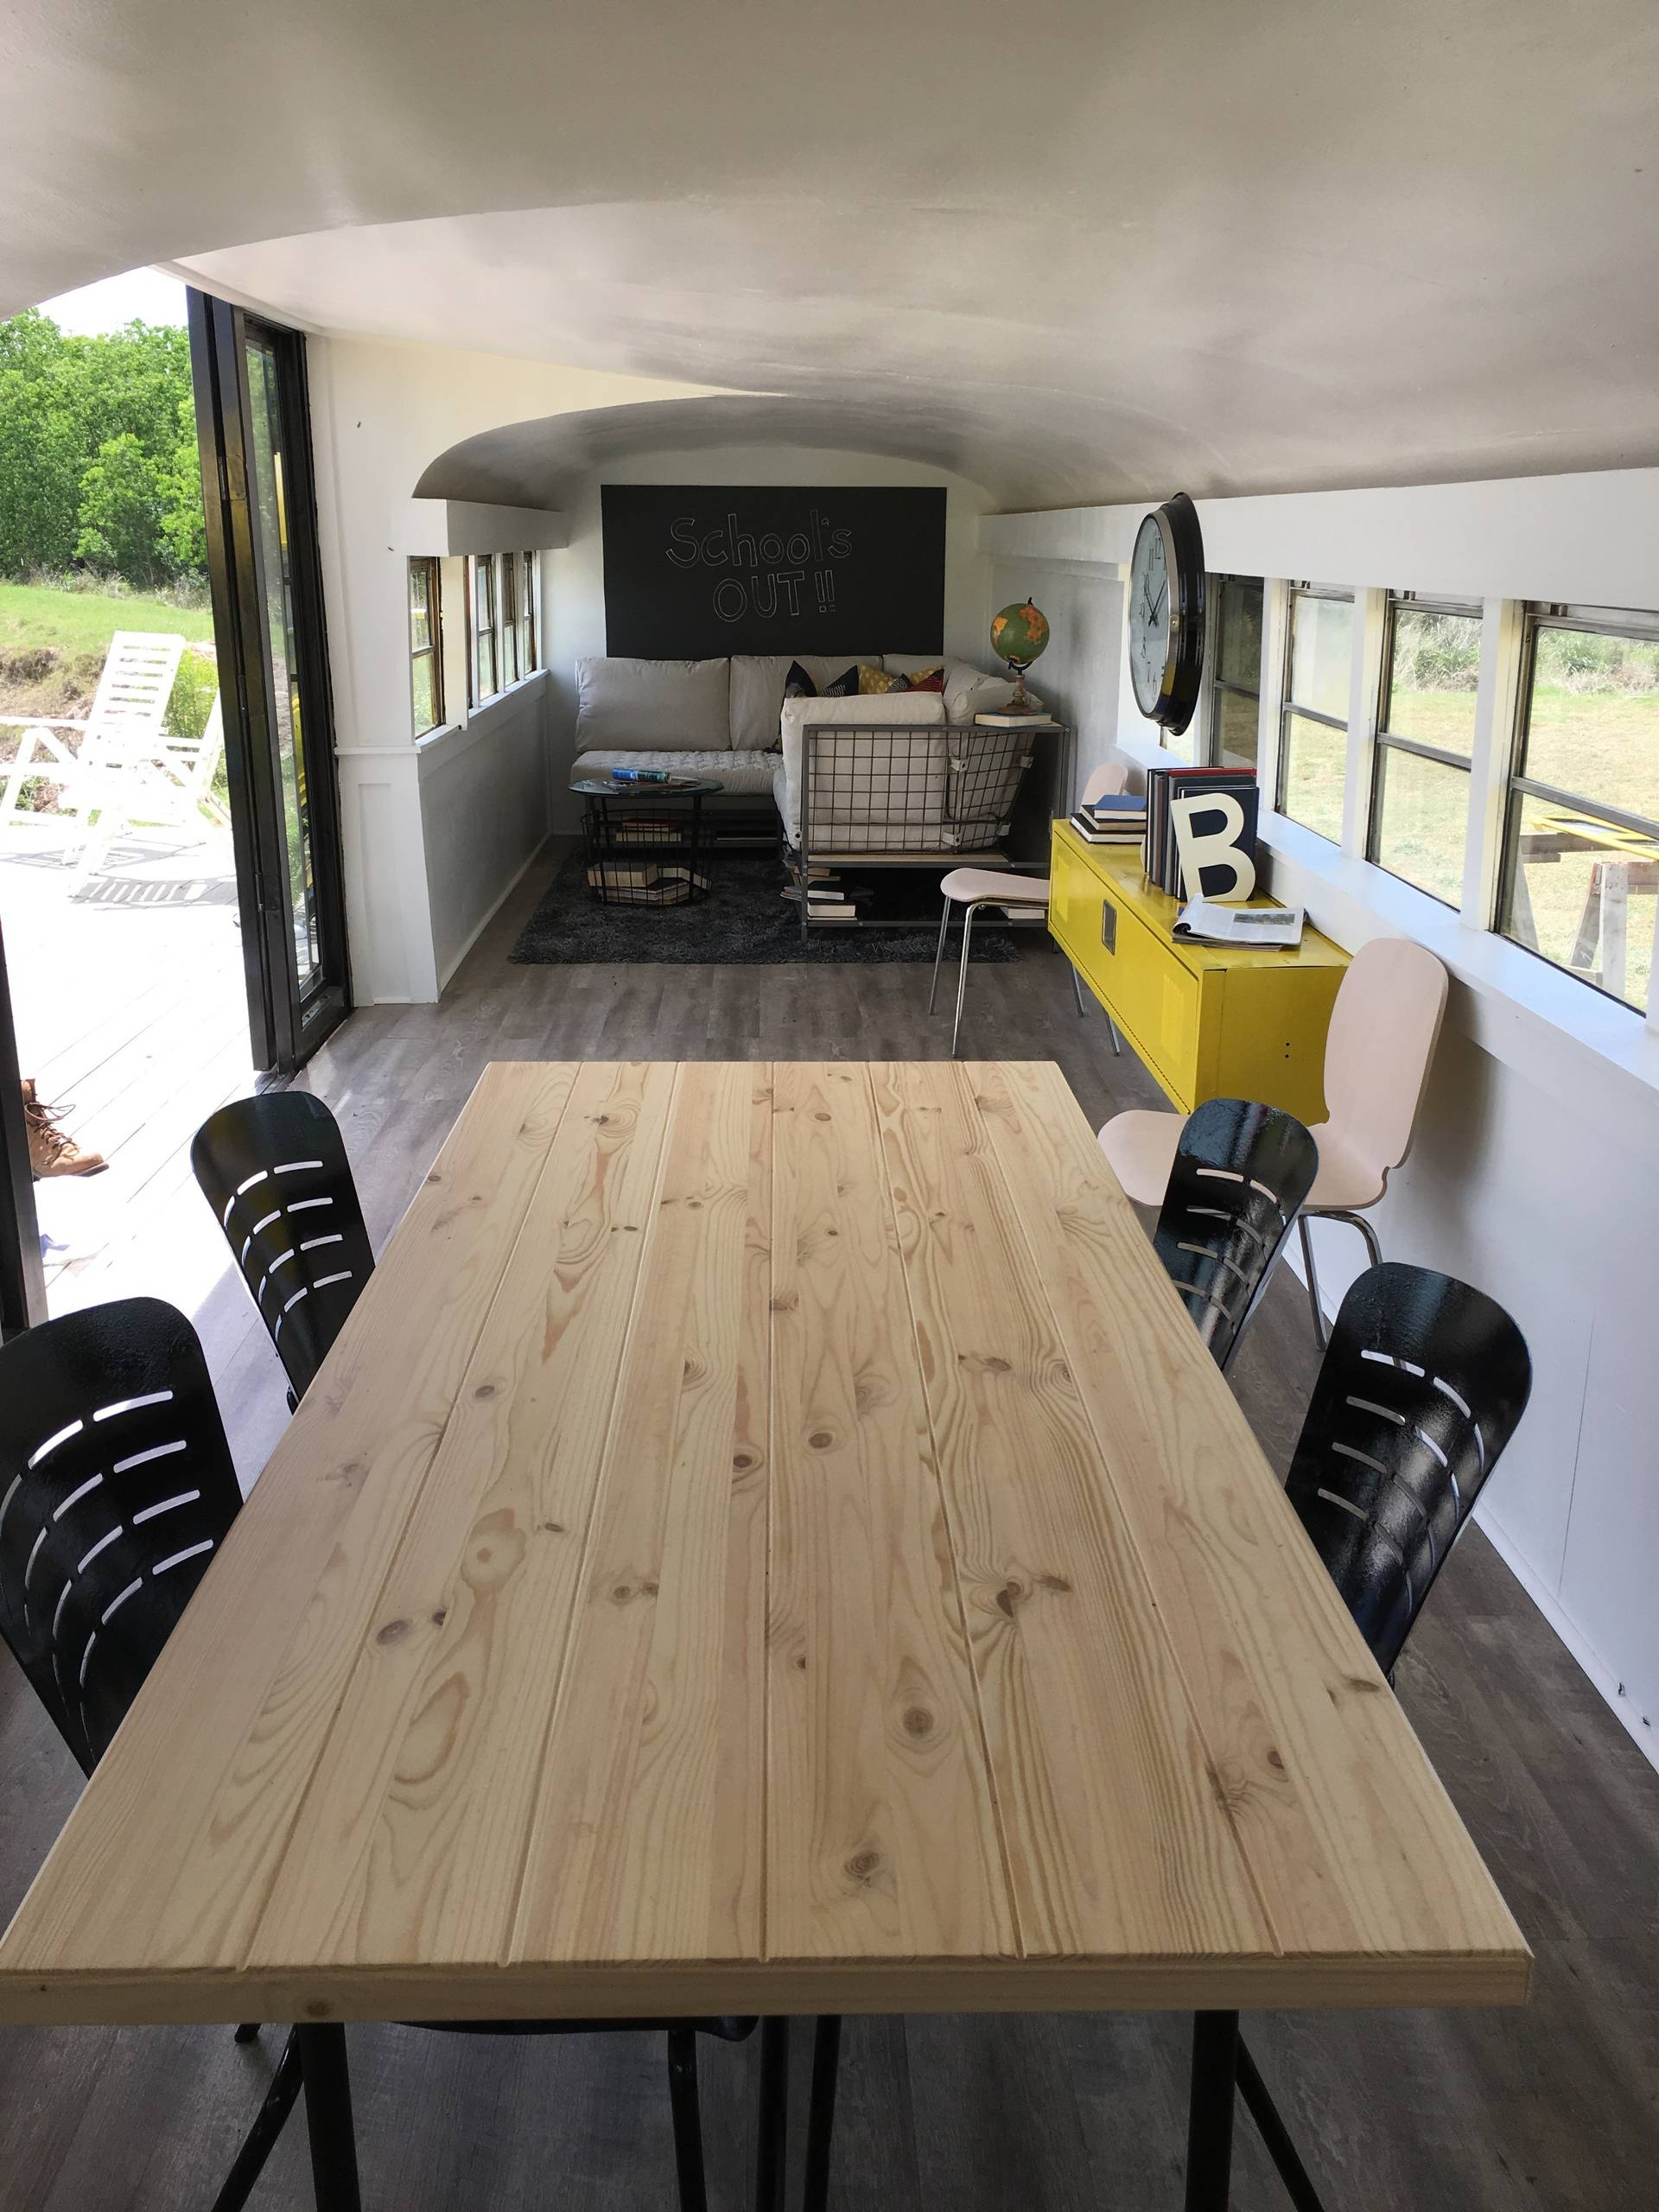 Vintage busses merge into a new tiny home